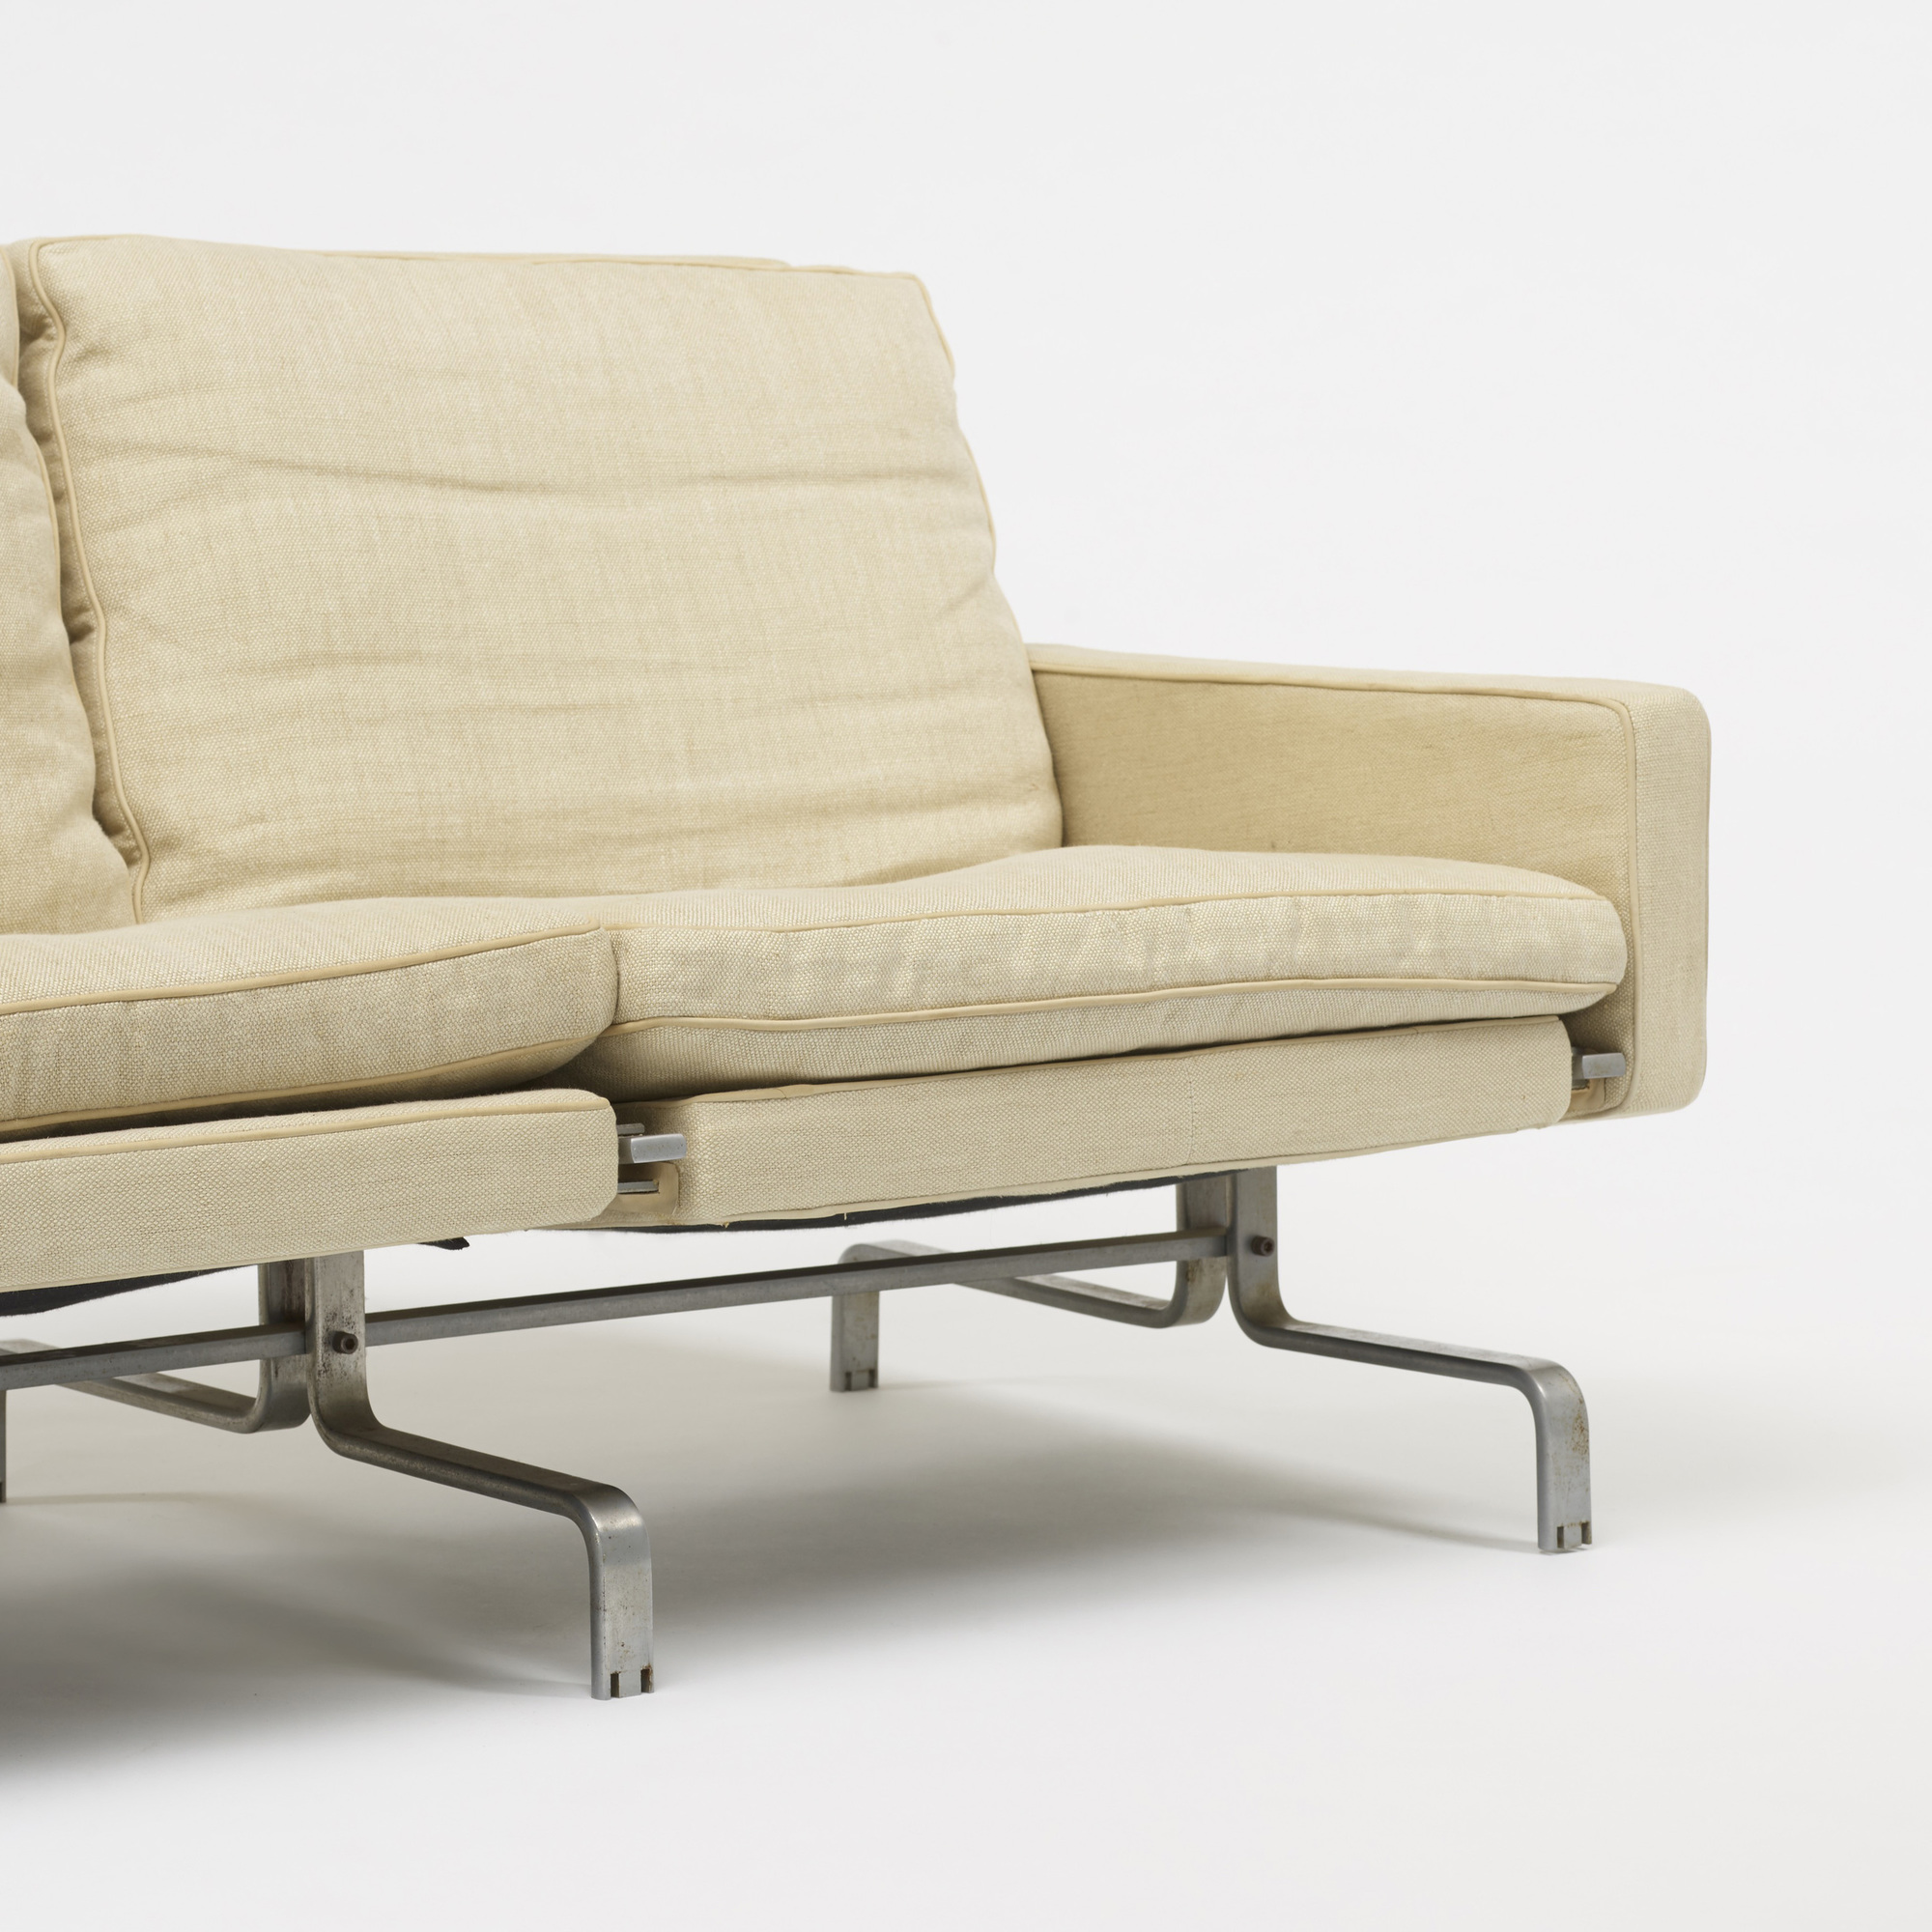 368: Poul Kjaerholm / PK 31/3 sofa (3 of 4)